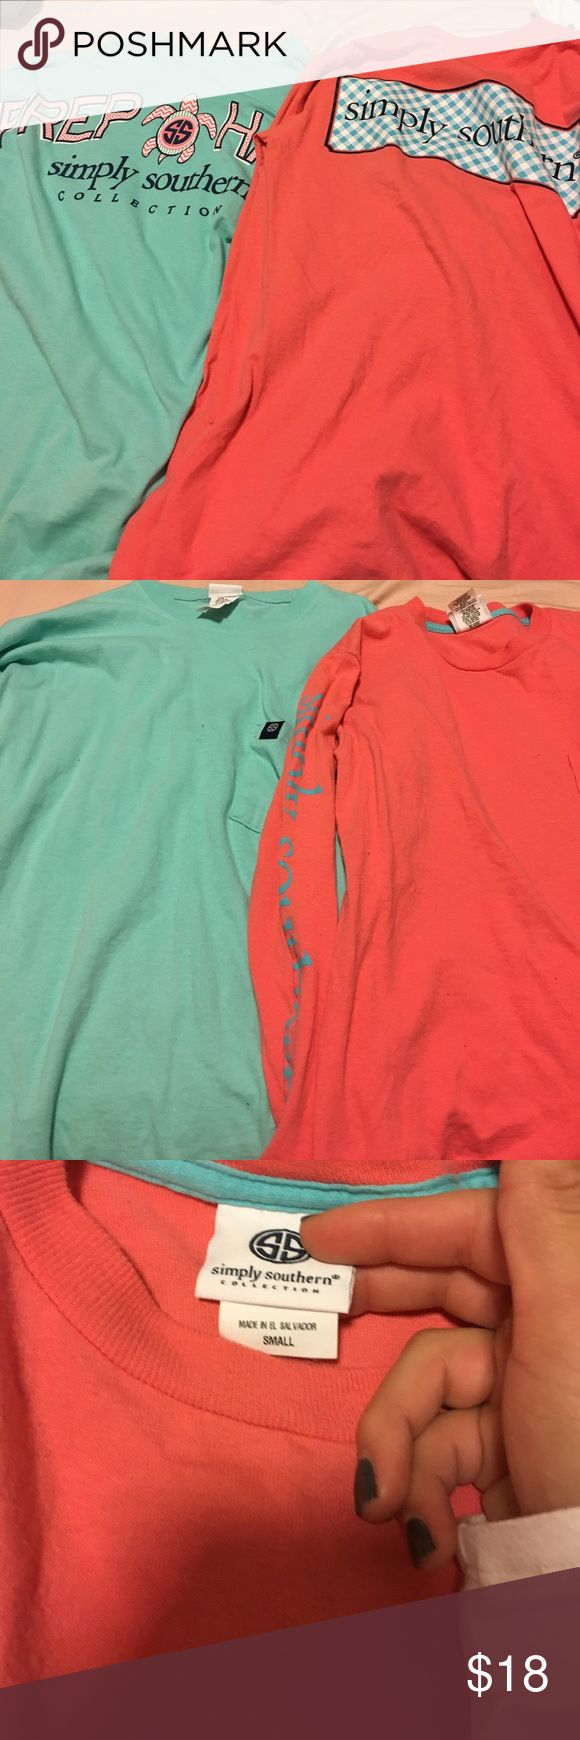 Simply souther long sleeve tees Teal with prep hard on the back, coral with simply souther on the back and written on the left arm. Simply Southern Tops Tees - Long Sleeve